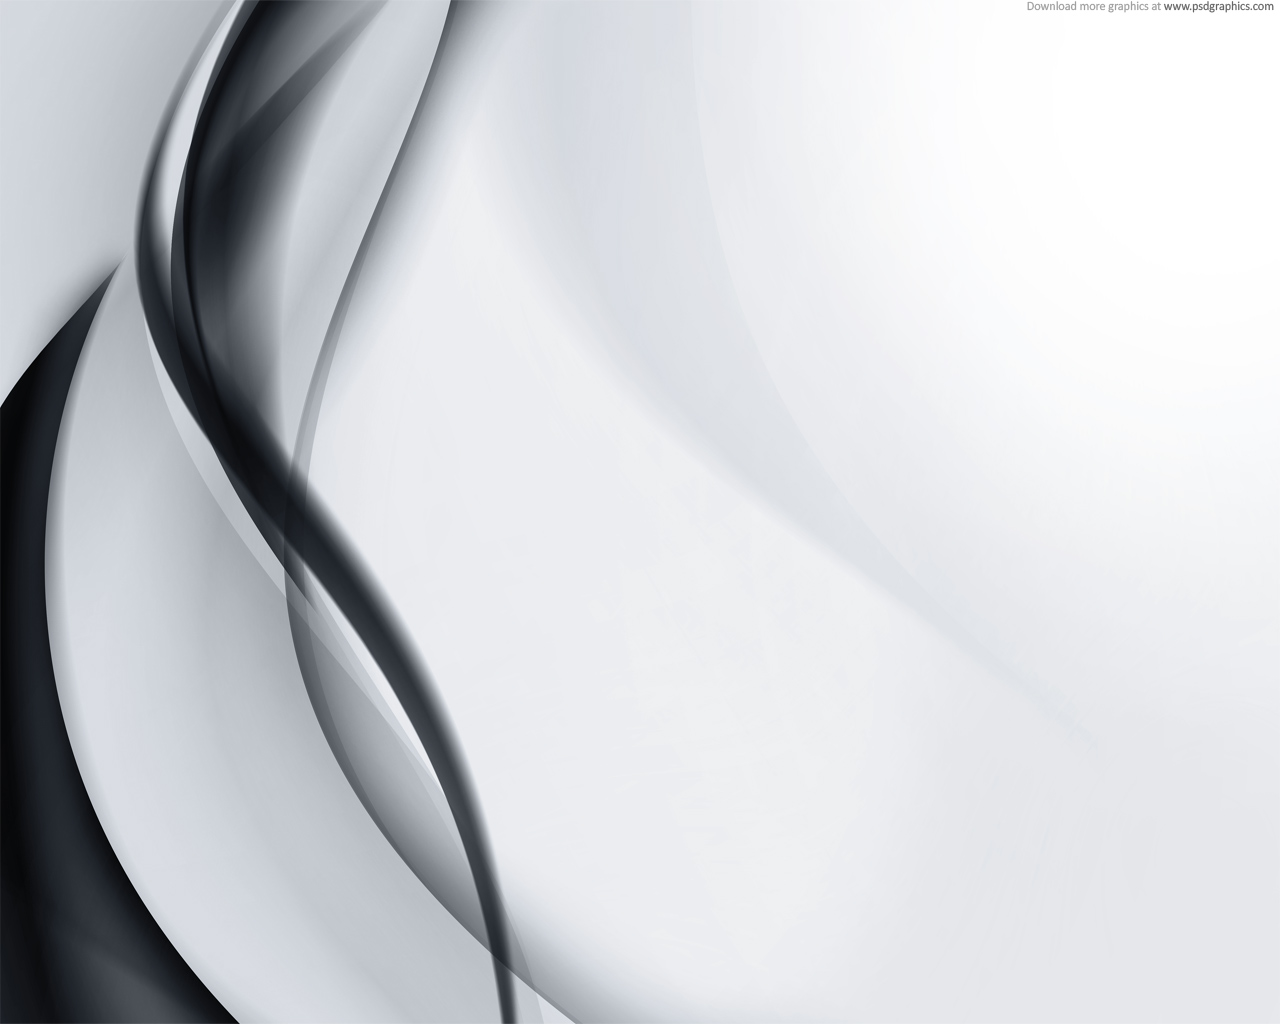 Medium size preview 1280x1024px Black and white abstract background 1280x1024